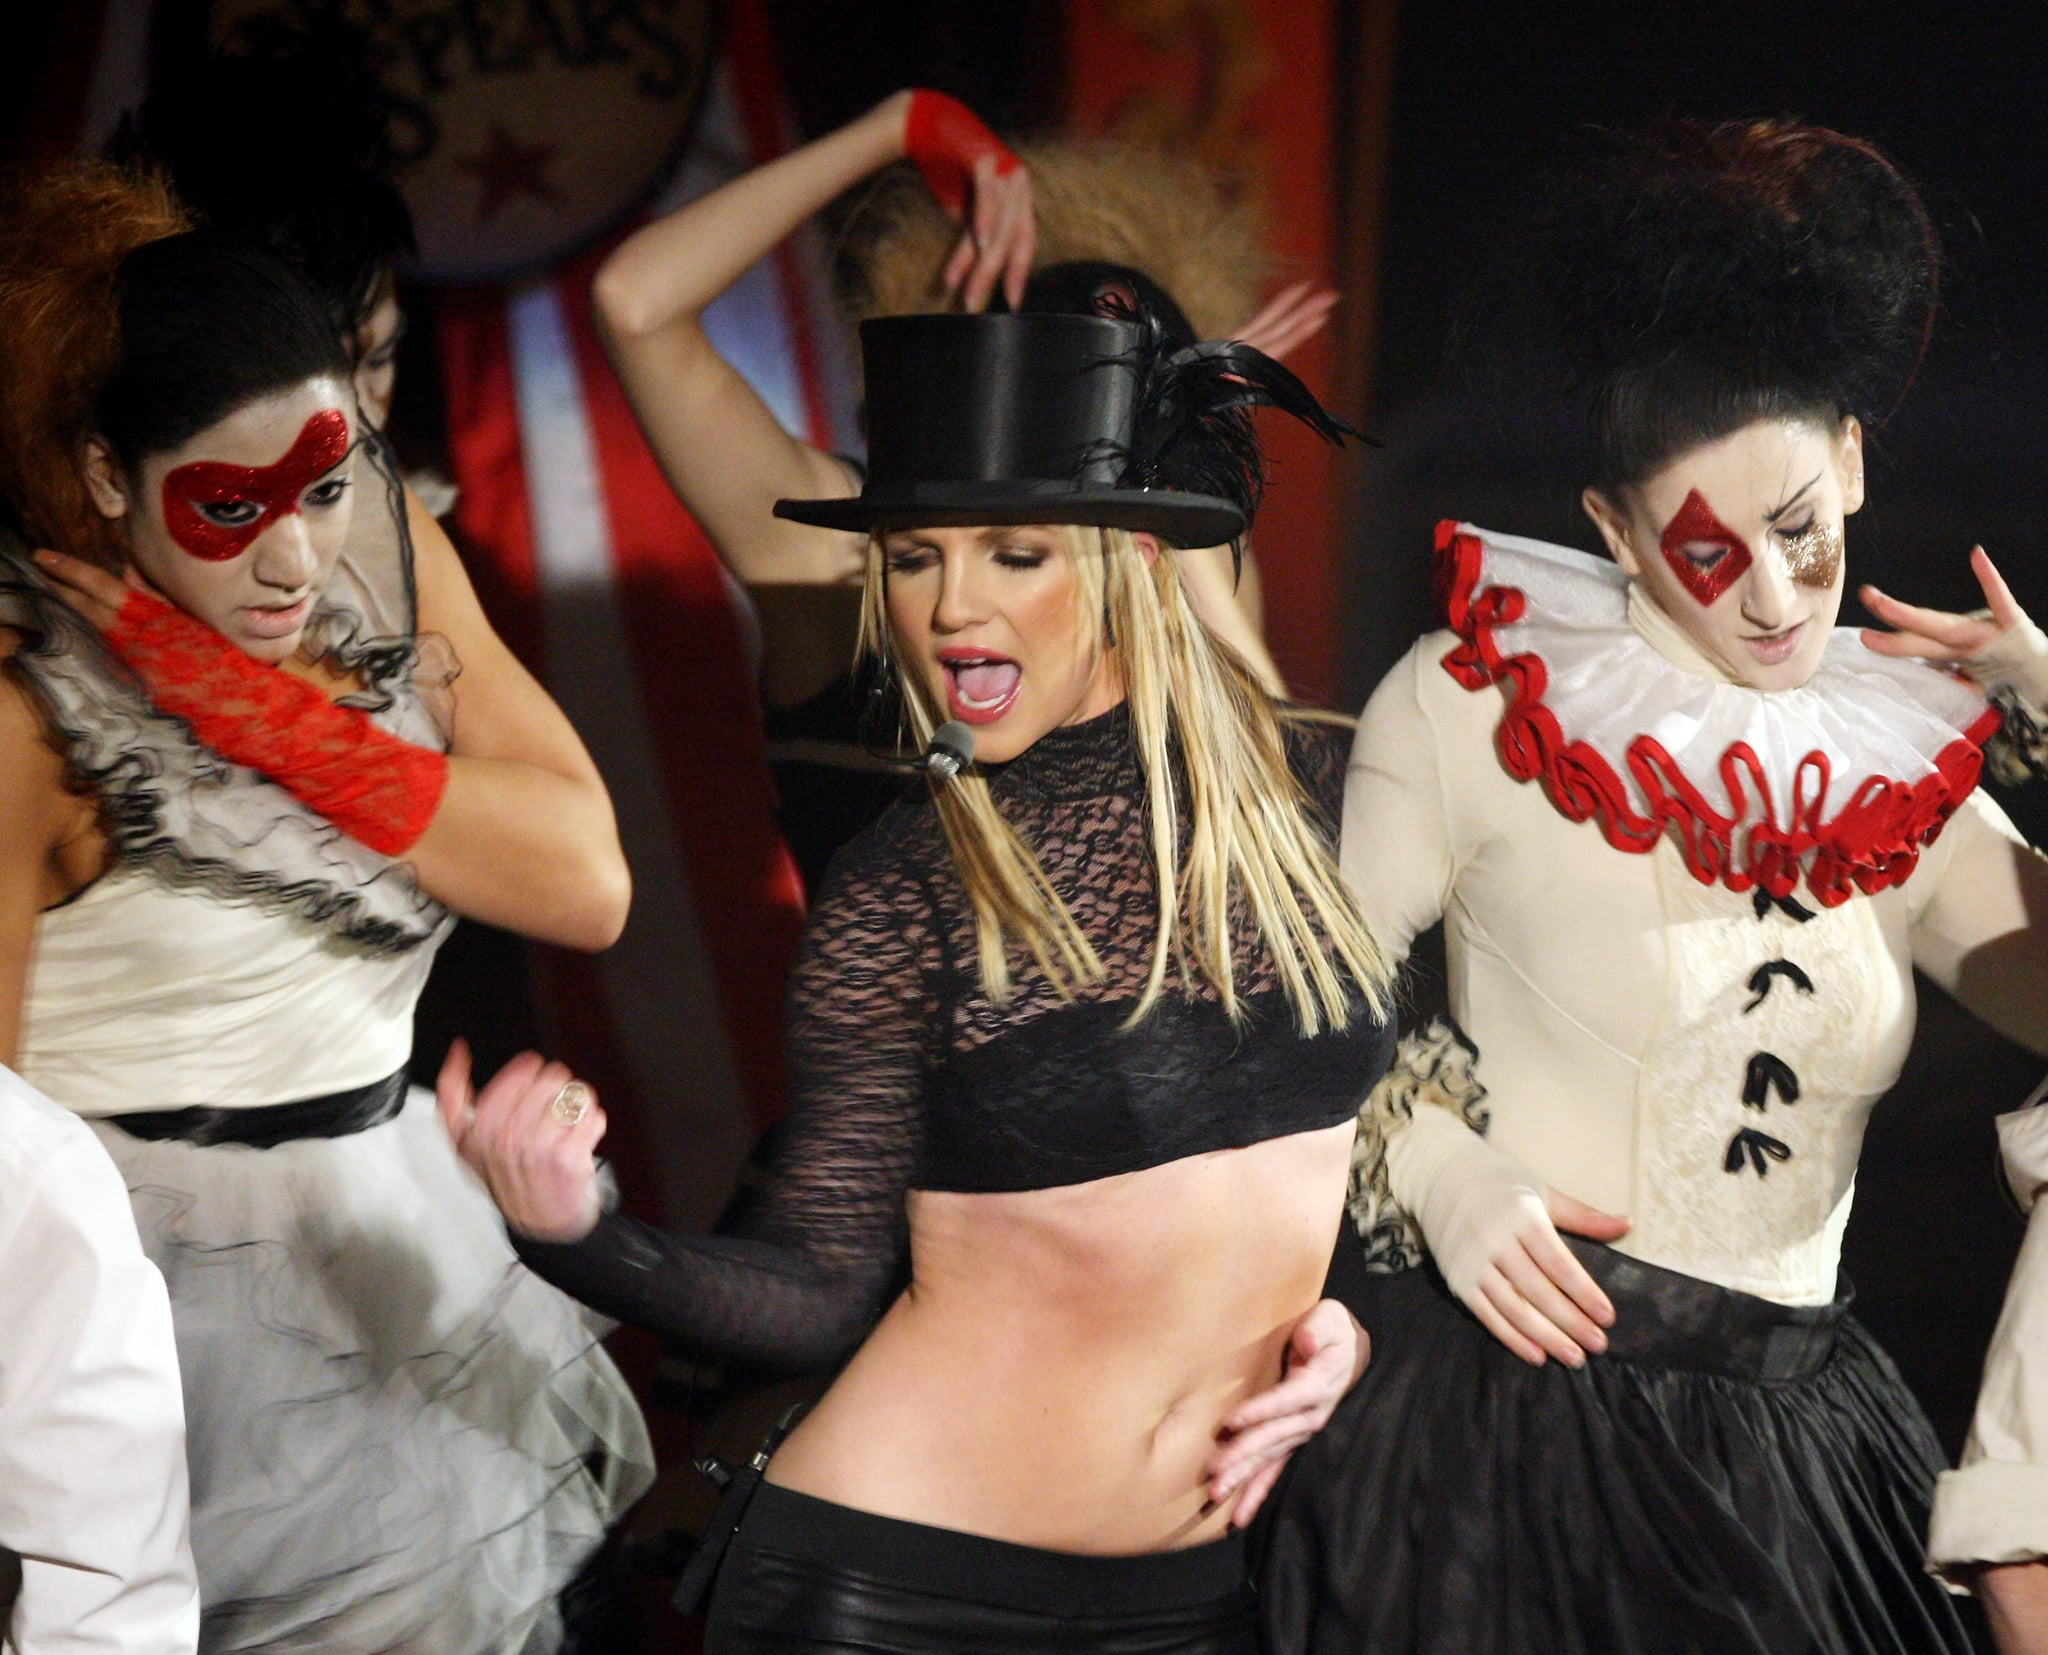 Britney Spears' Circus Tour Photos - Us Weekly